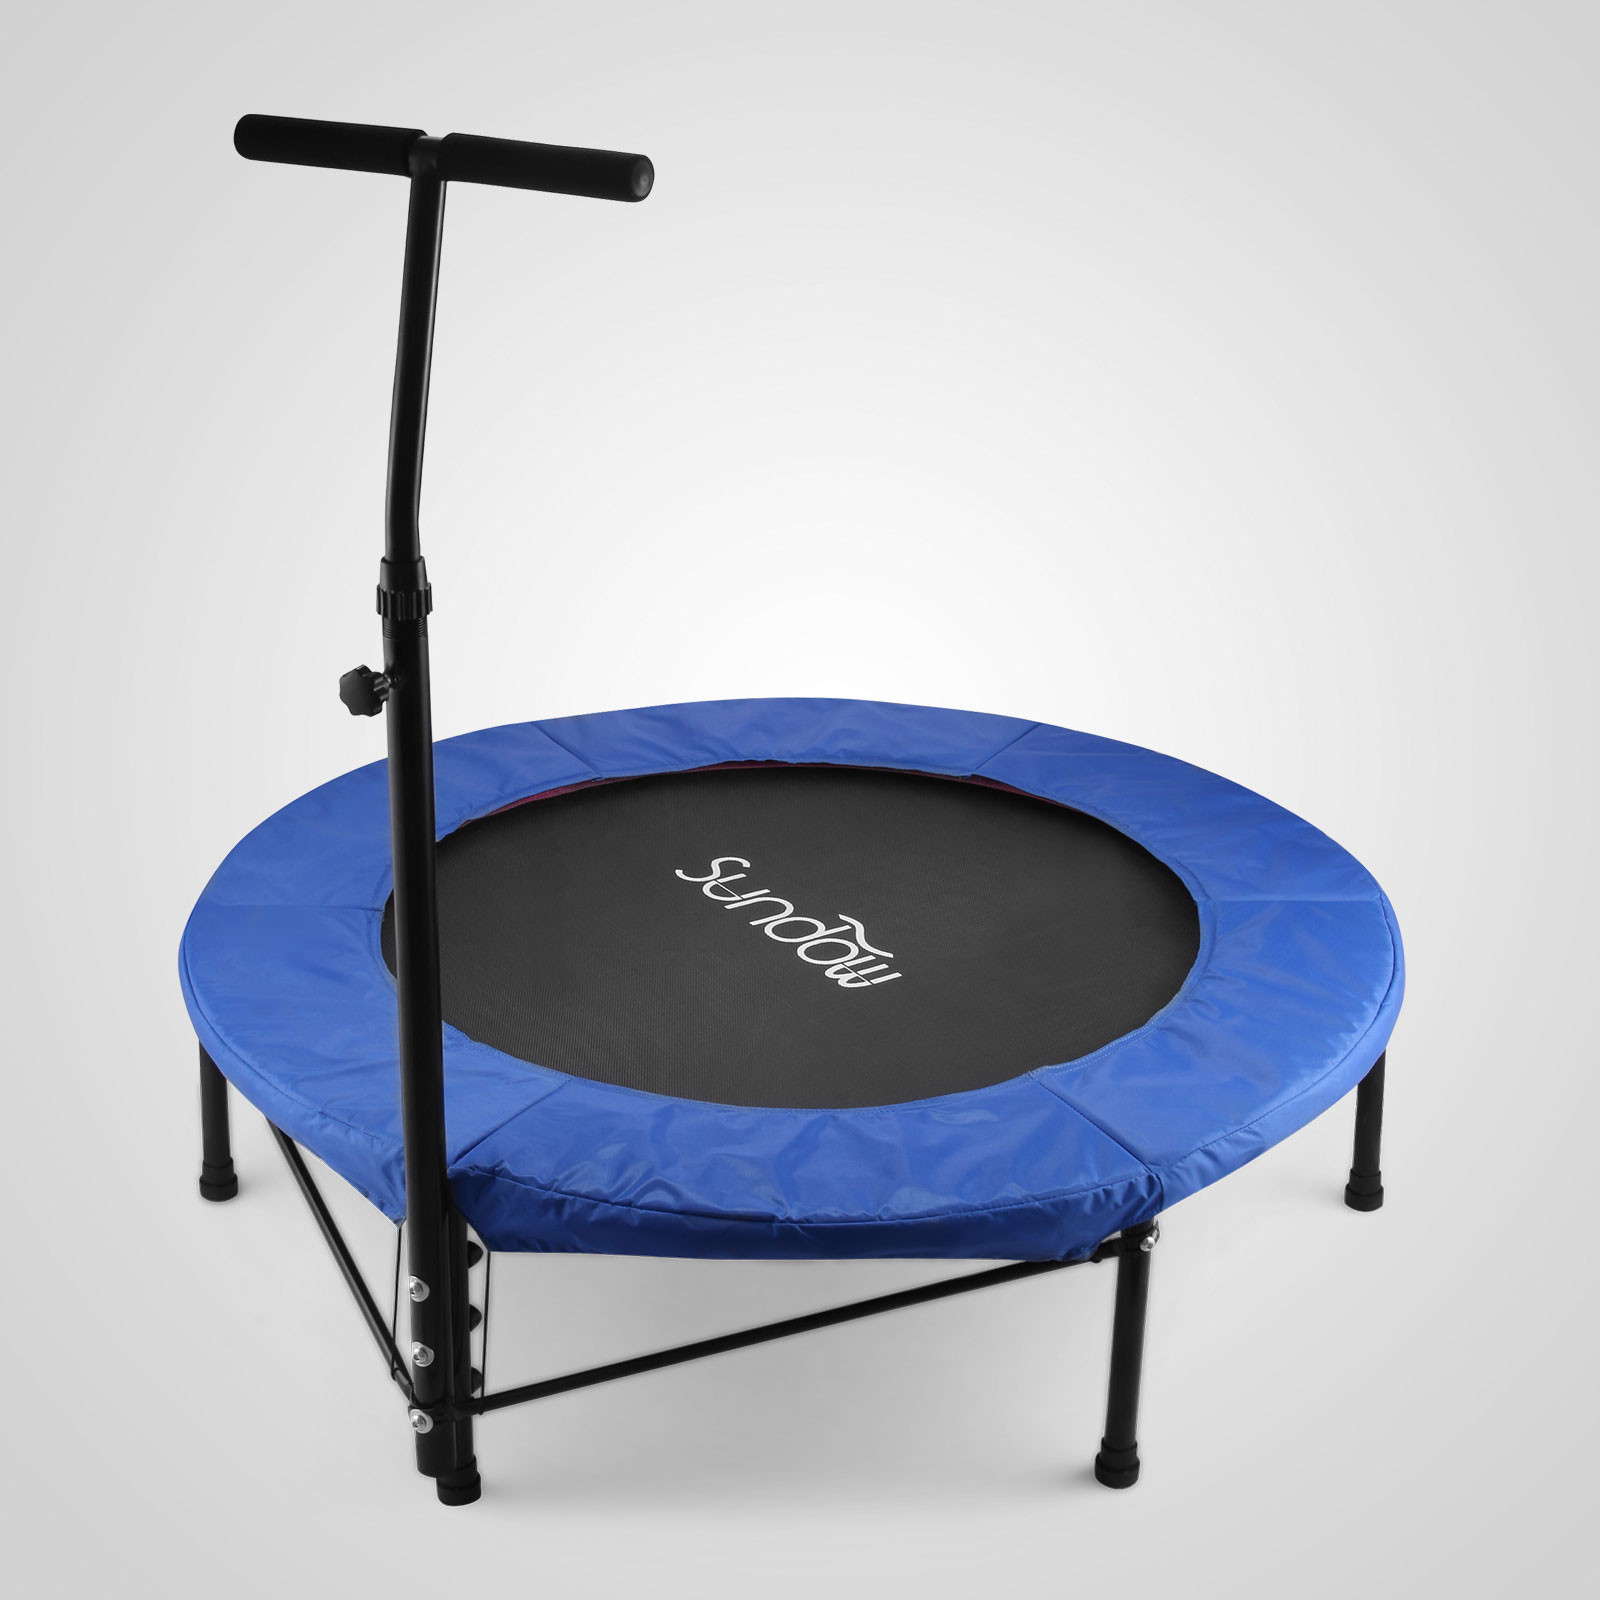 40 mini trampoline fitness jumper gym jump kids play with handle widely trusted ebay. Black Bedroom Furniture Sets. Home Design Ideas